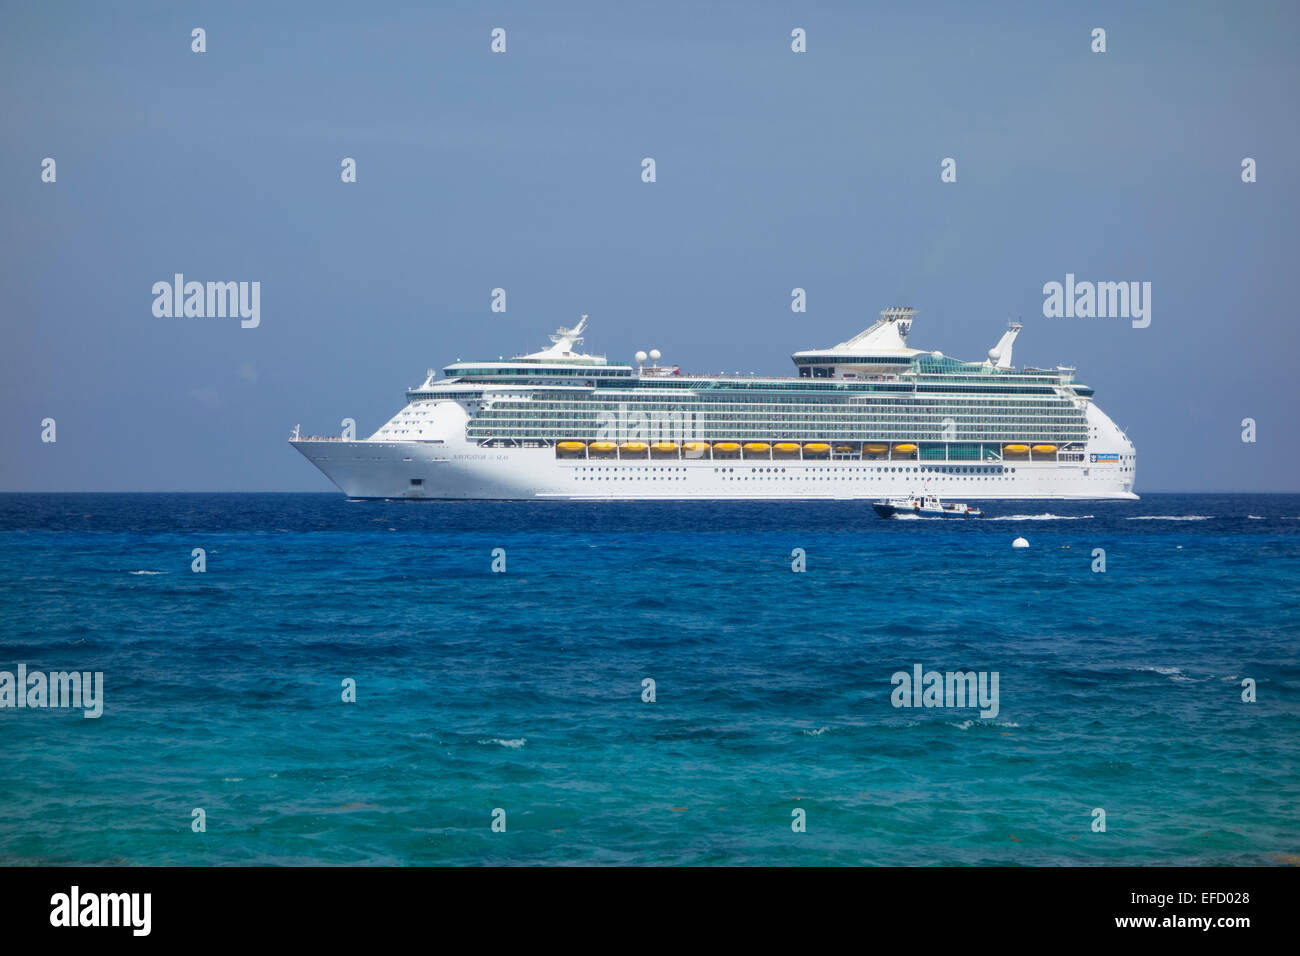 Luxury cruise ship Navigator of the Seas - Stock Image